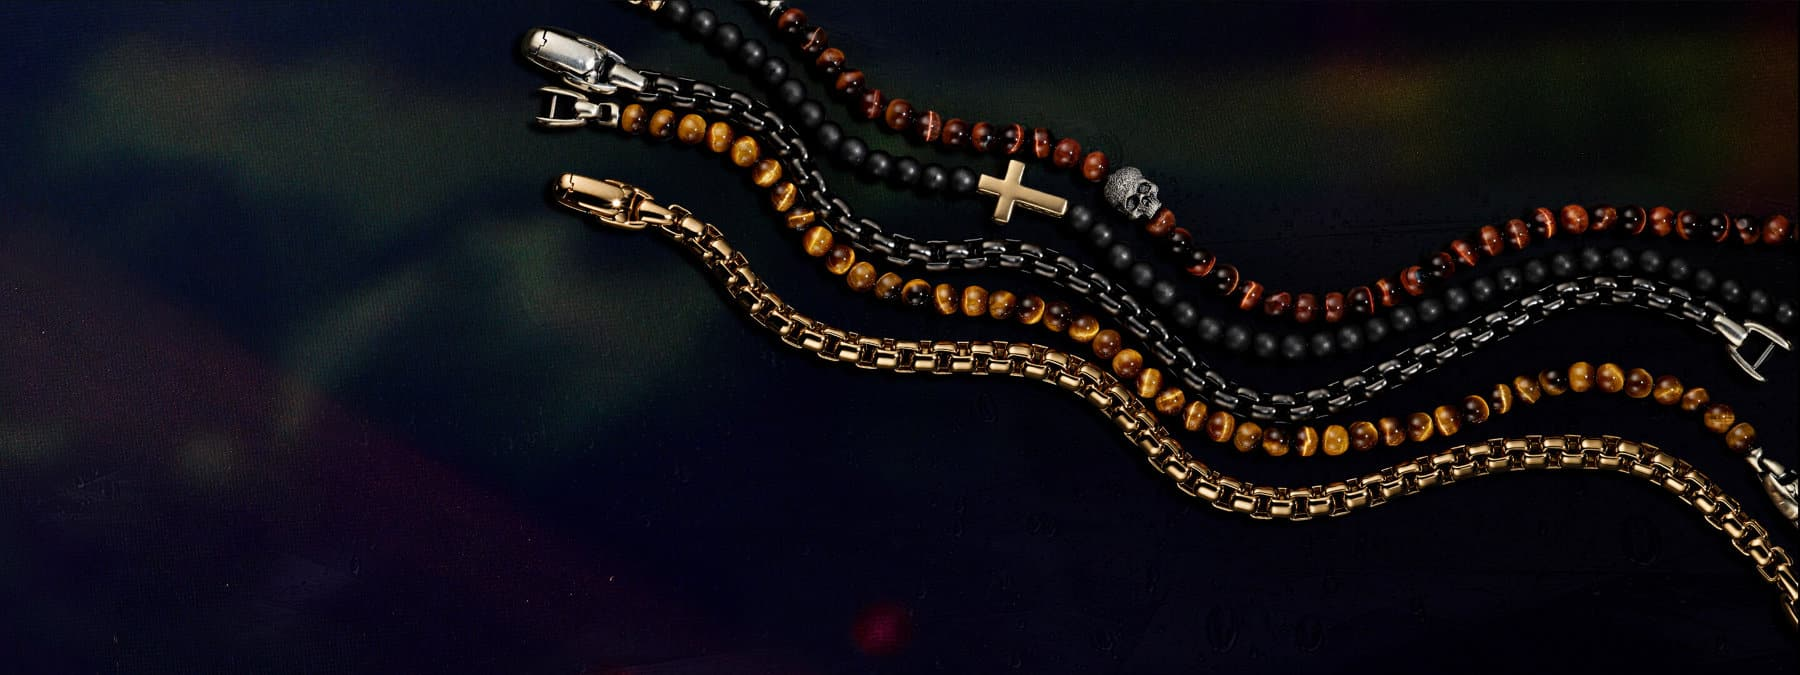 A color photograph shows a row of five David Yurman men's bracelets from the Spiritual Beads and Chain collections atop a colorful backdrop illuminated by light. Two bracelets are crafted from 18K yellow gold or black titanium with sterling silver. Three of the bracelets are crafted from sterling silver with beads of black onyx or tiger's eye.